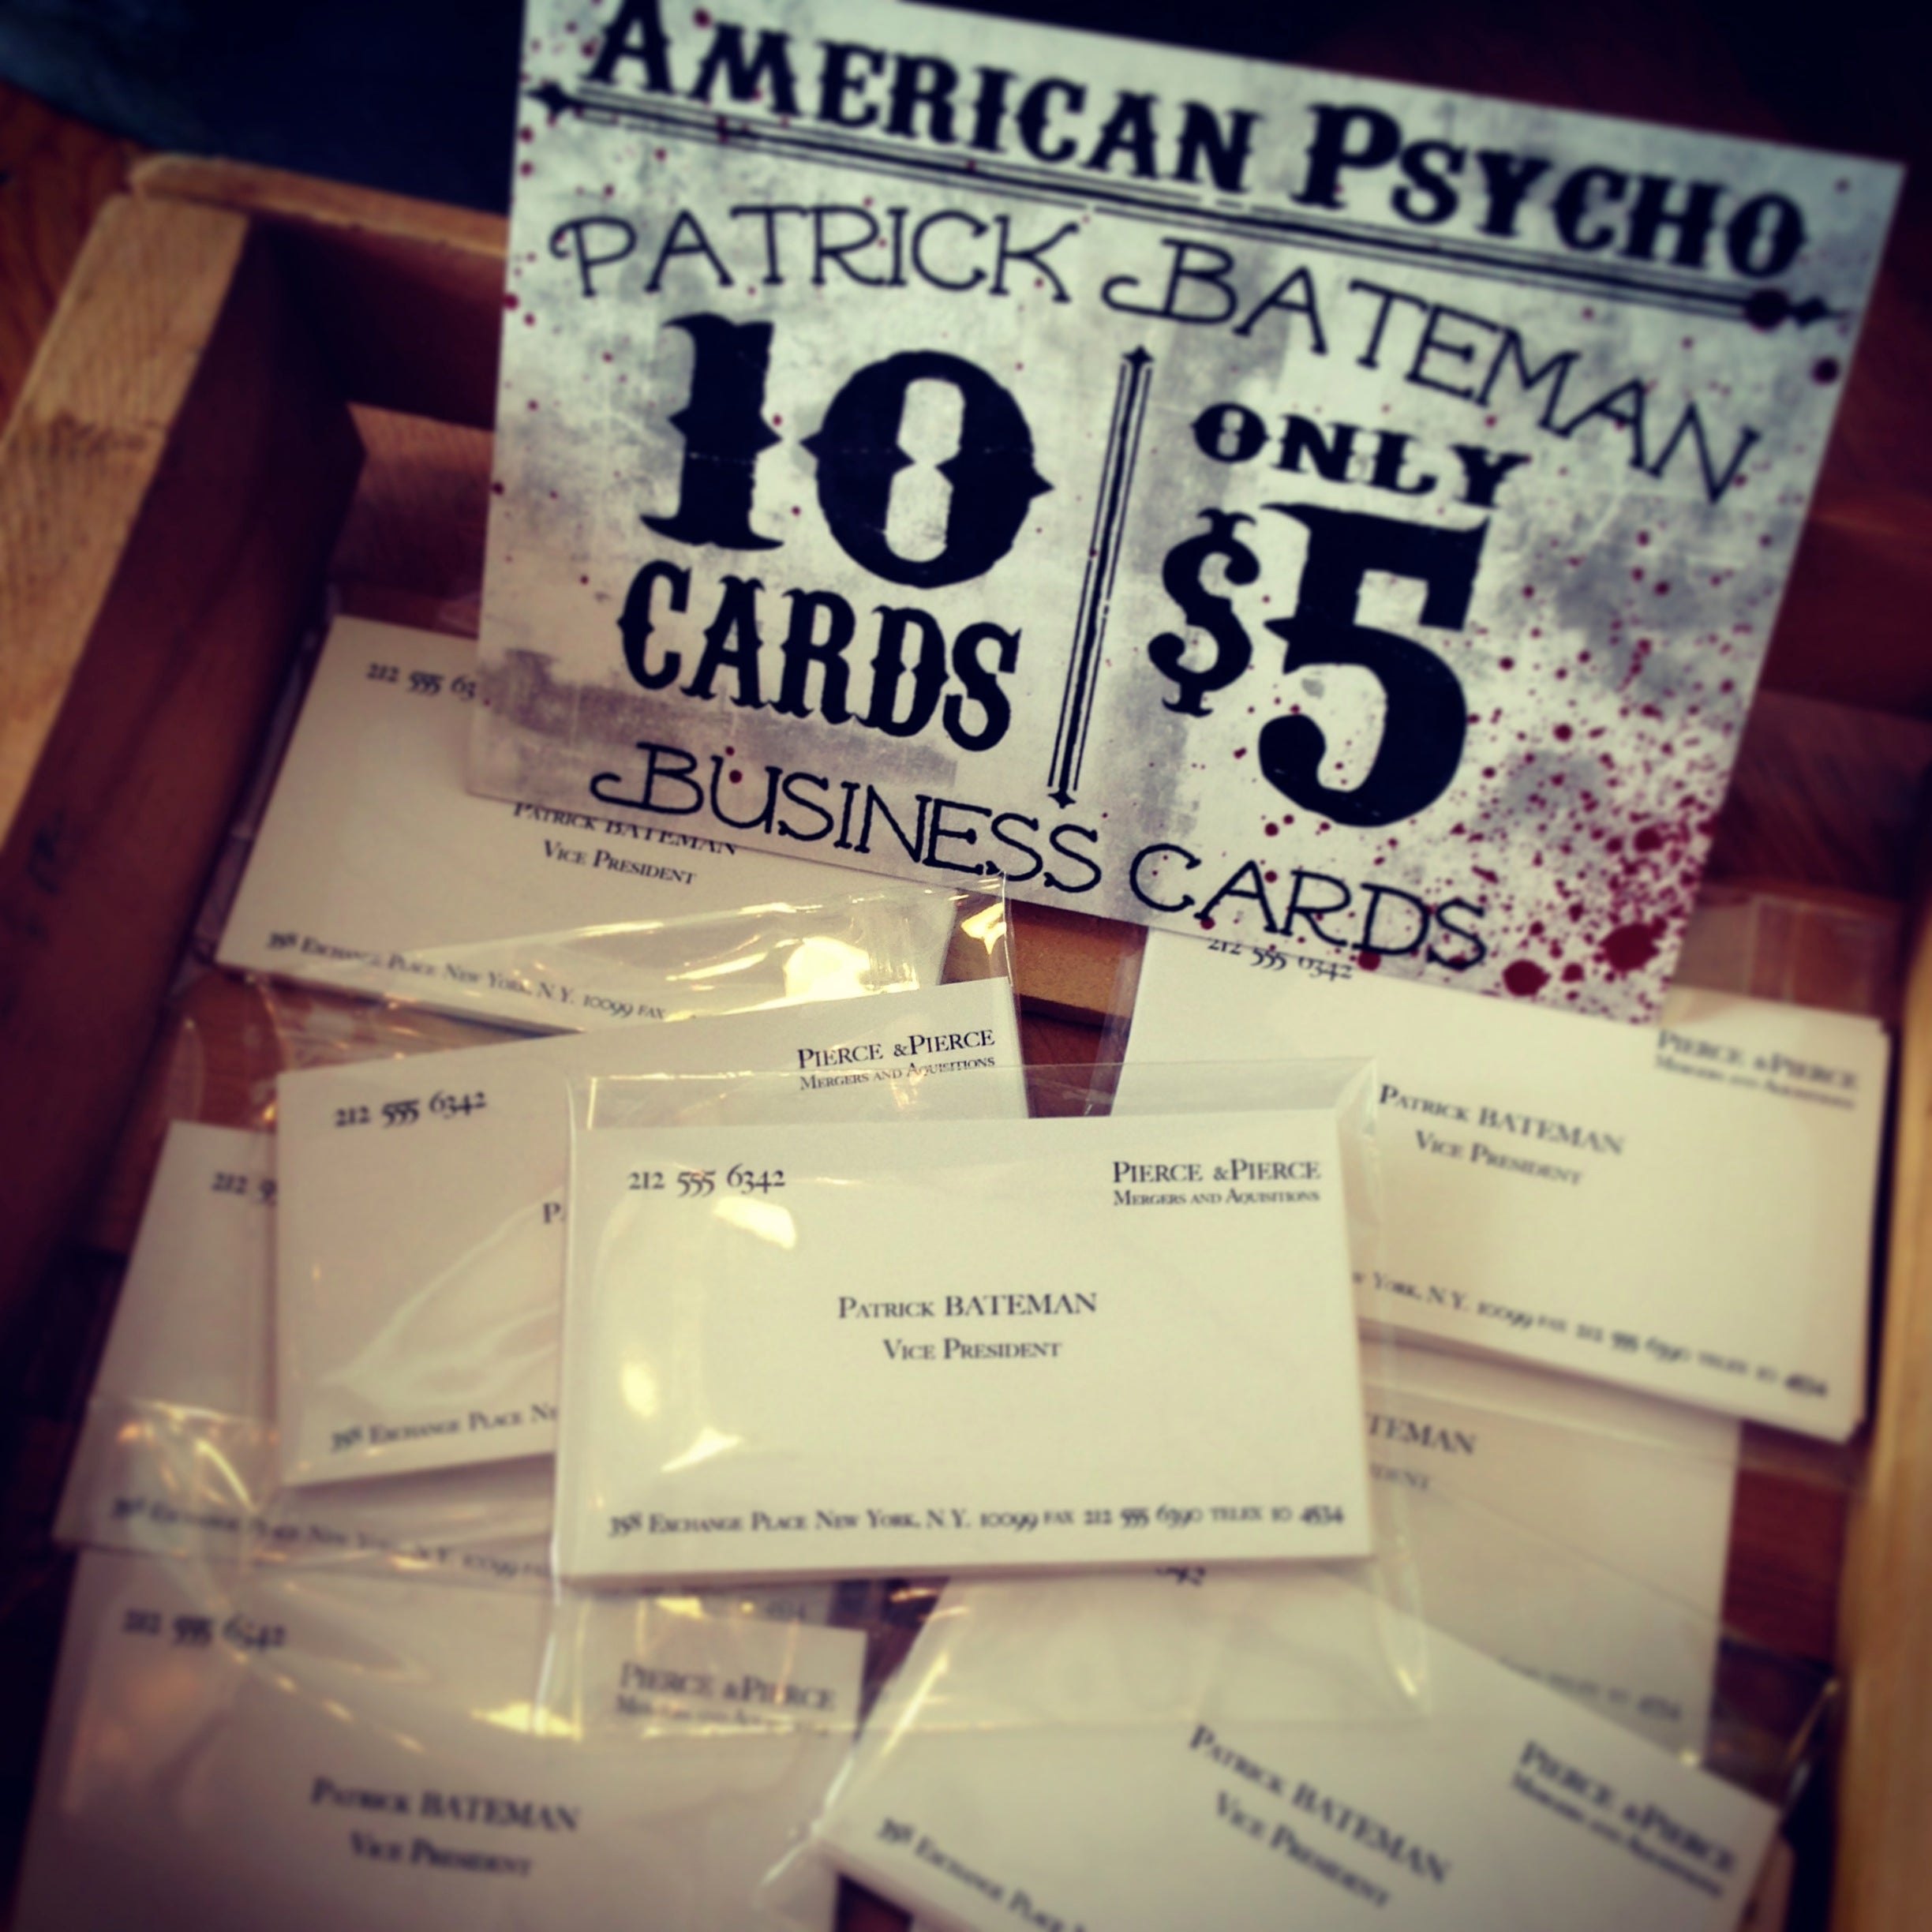 Patrick bateman business cards american psycho thirteenth floor patrick bateman business cards american psycho thirteenth floor colourmoves